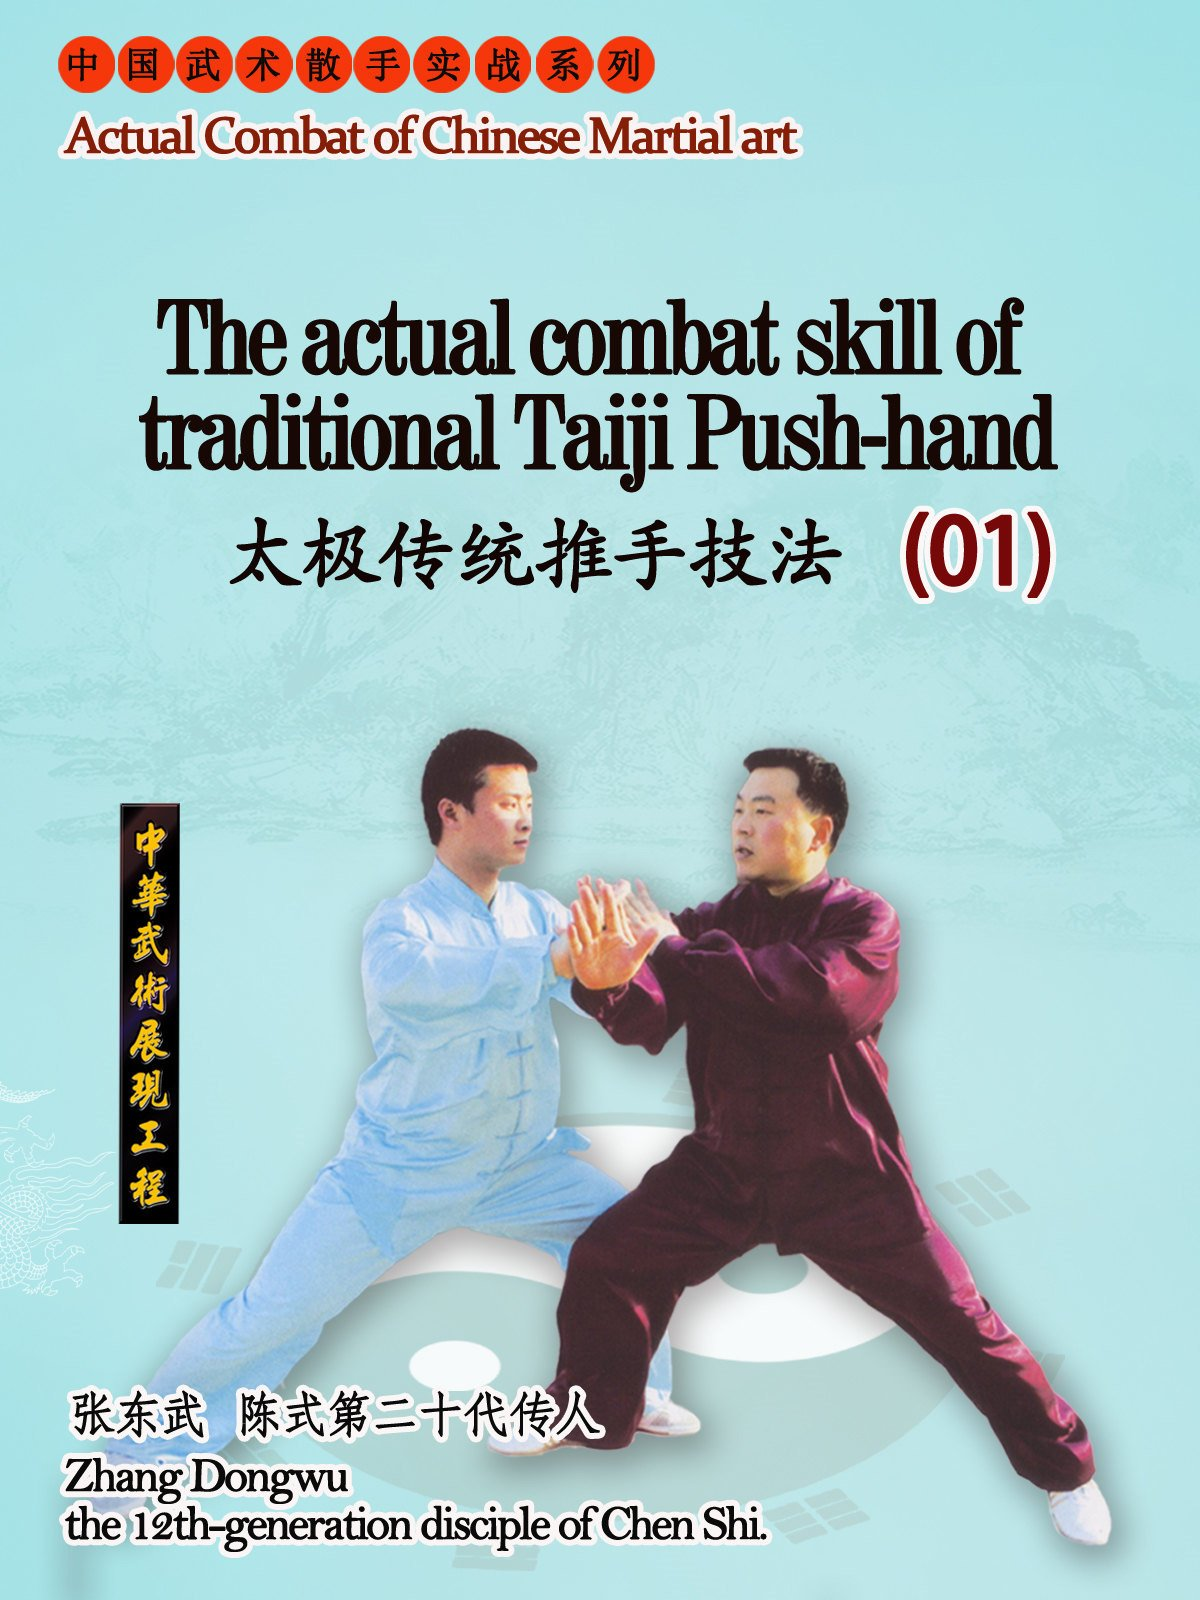 Actual Combat of Chinese Martial art-The actual combat skill of traditional Taiji Push-hand 01